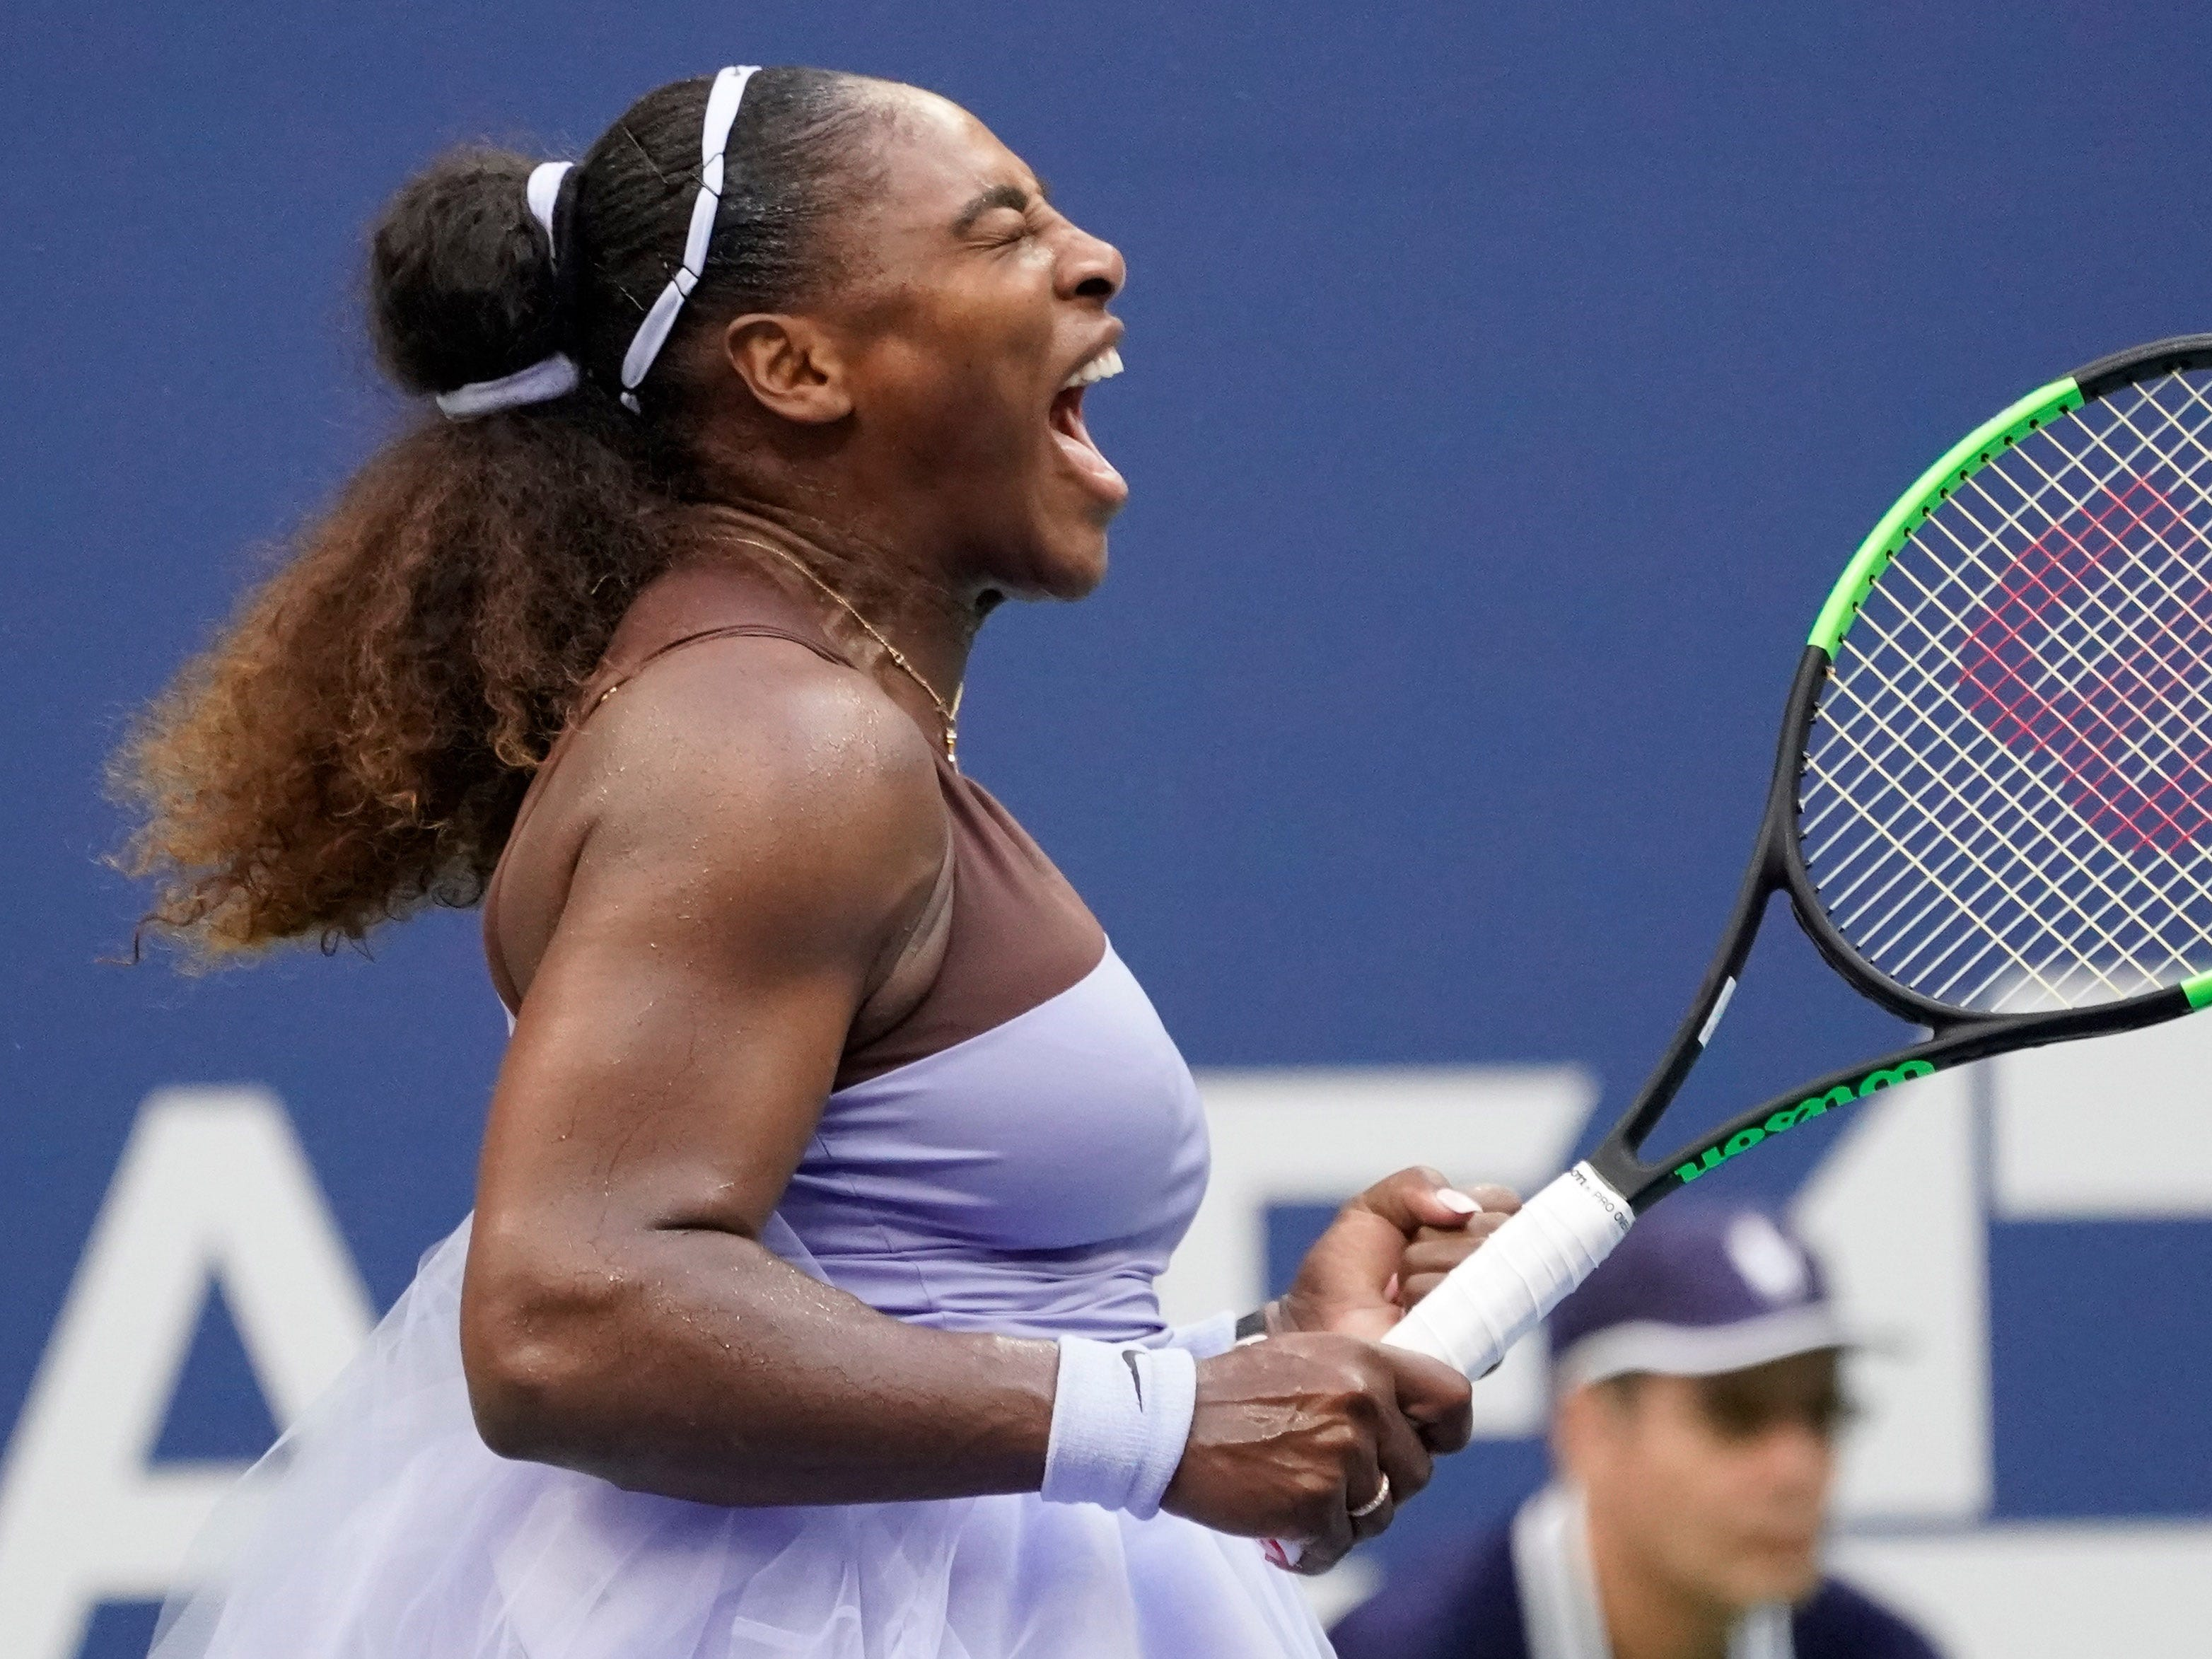 Serena Williams gets fired up for a big point against Kaia Kanepi.